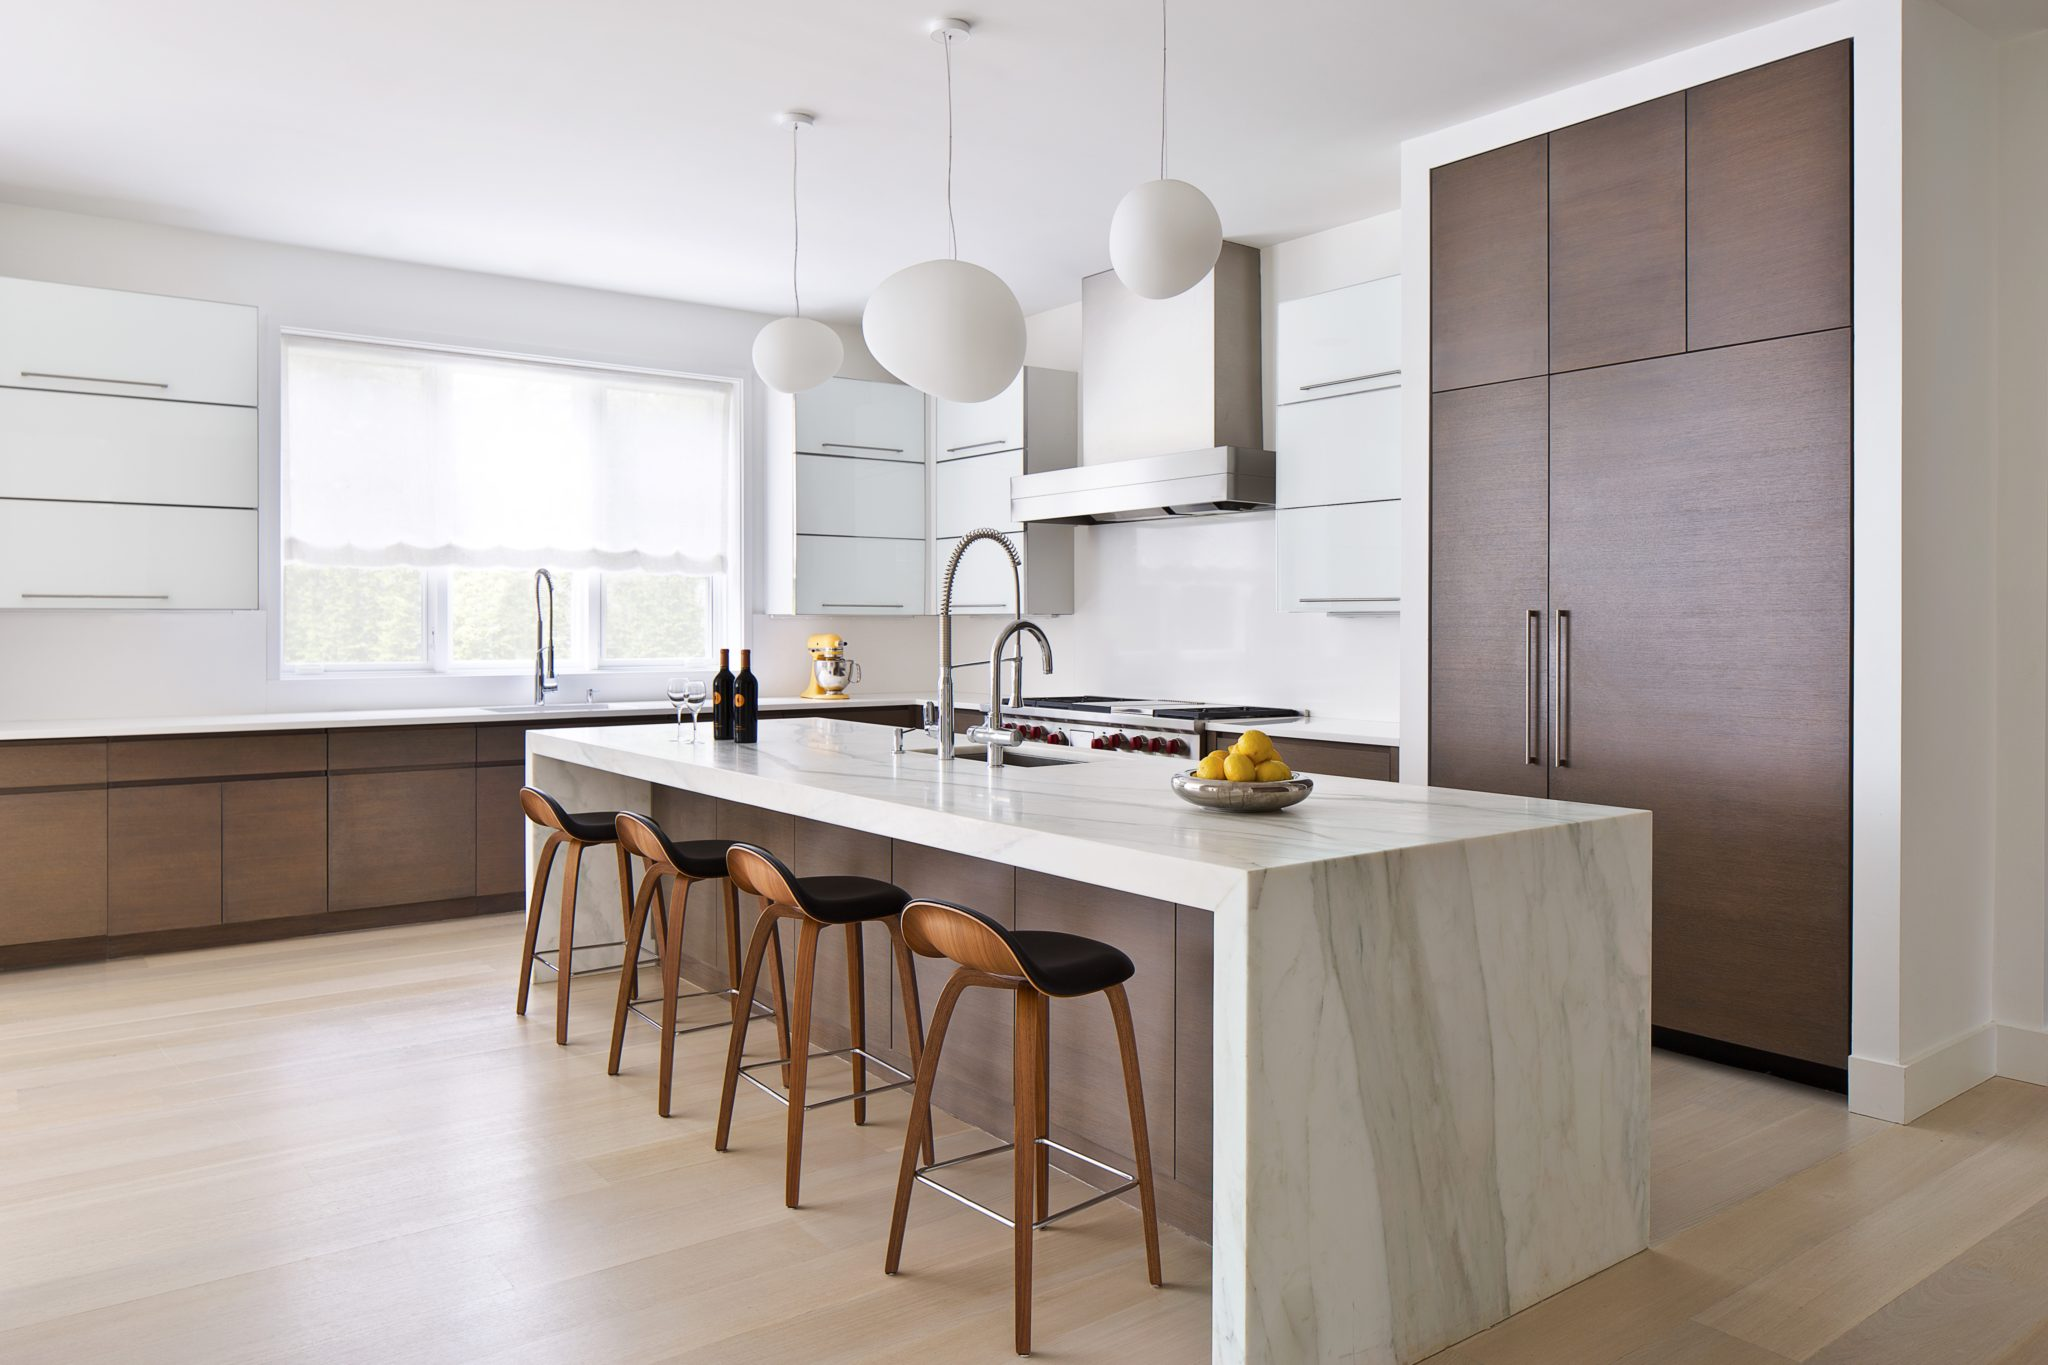 Modern kitchen with waterfall island countertop by Alisberg Parker Architects